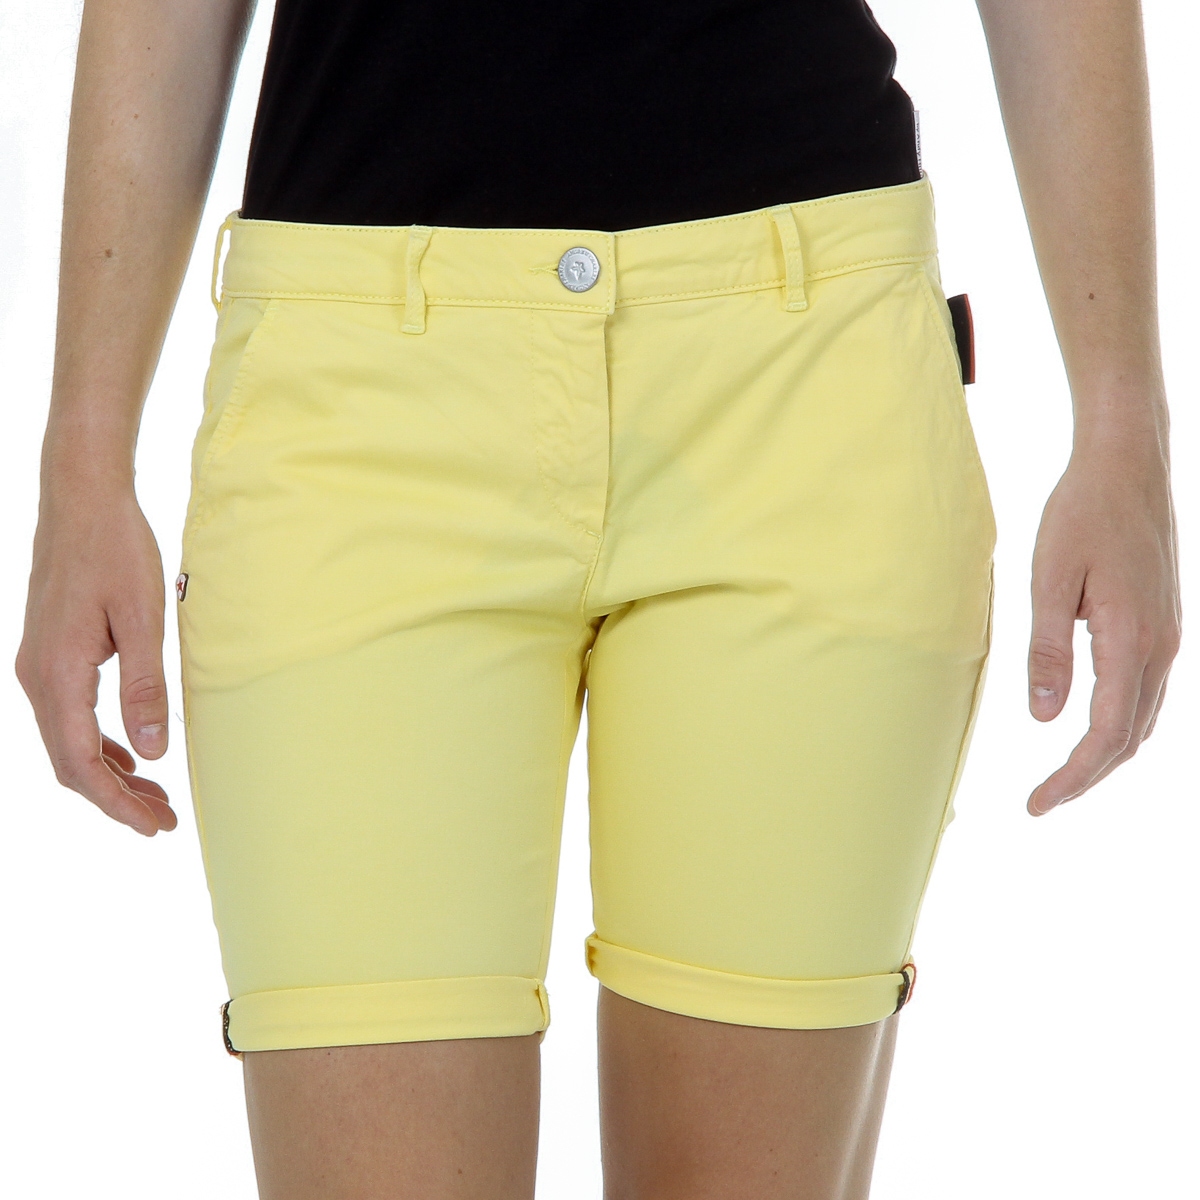 Primary image for Andrew Charles Womens Shorts Yellow SAFIA